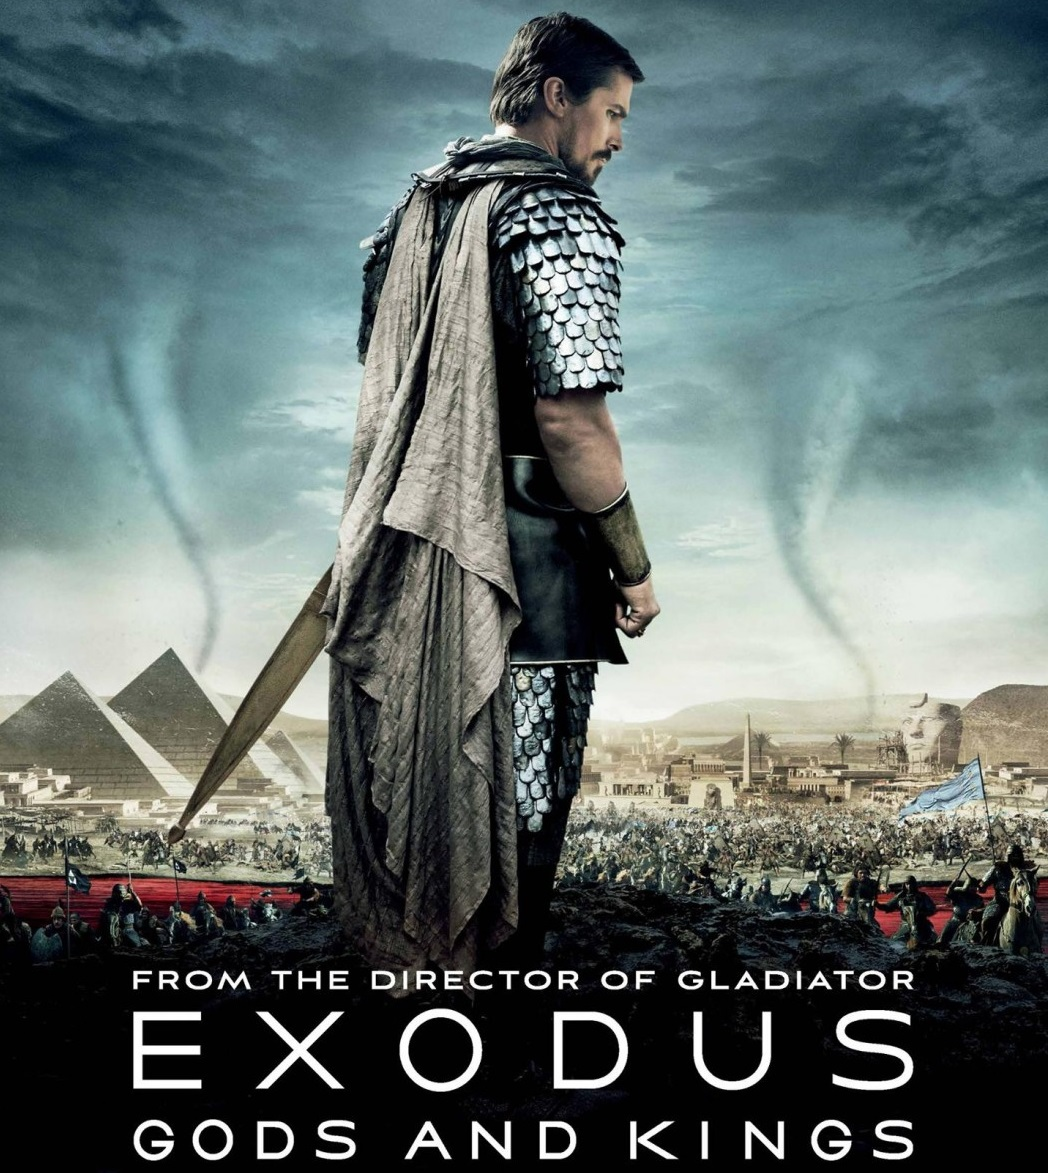 Exodus-Gods-and-Kings-Poster-7